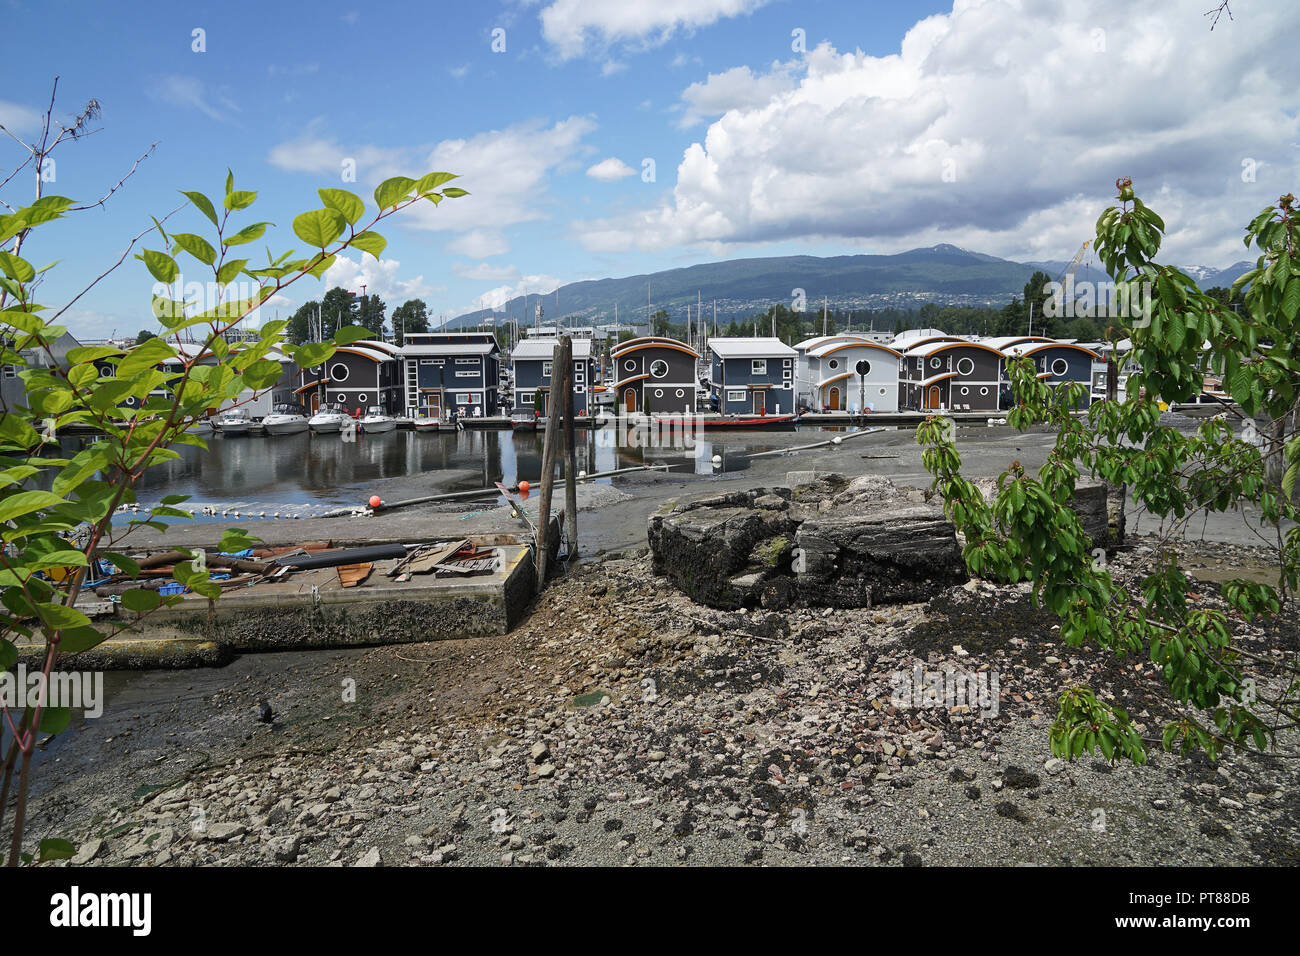 Mosquito Creek Marina floating homes, Vancouver, Canada - Stock Image